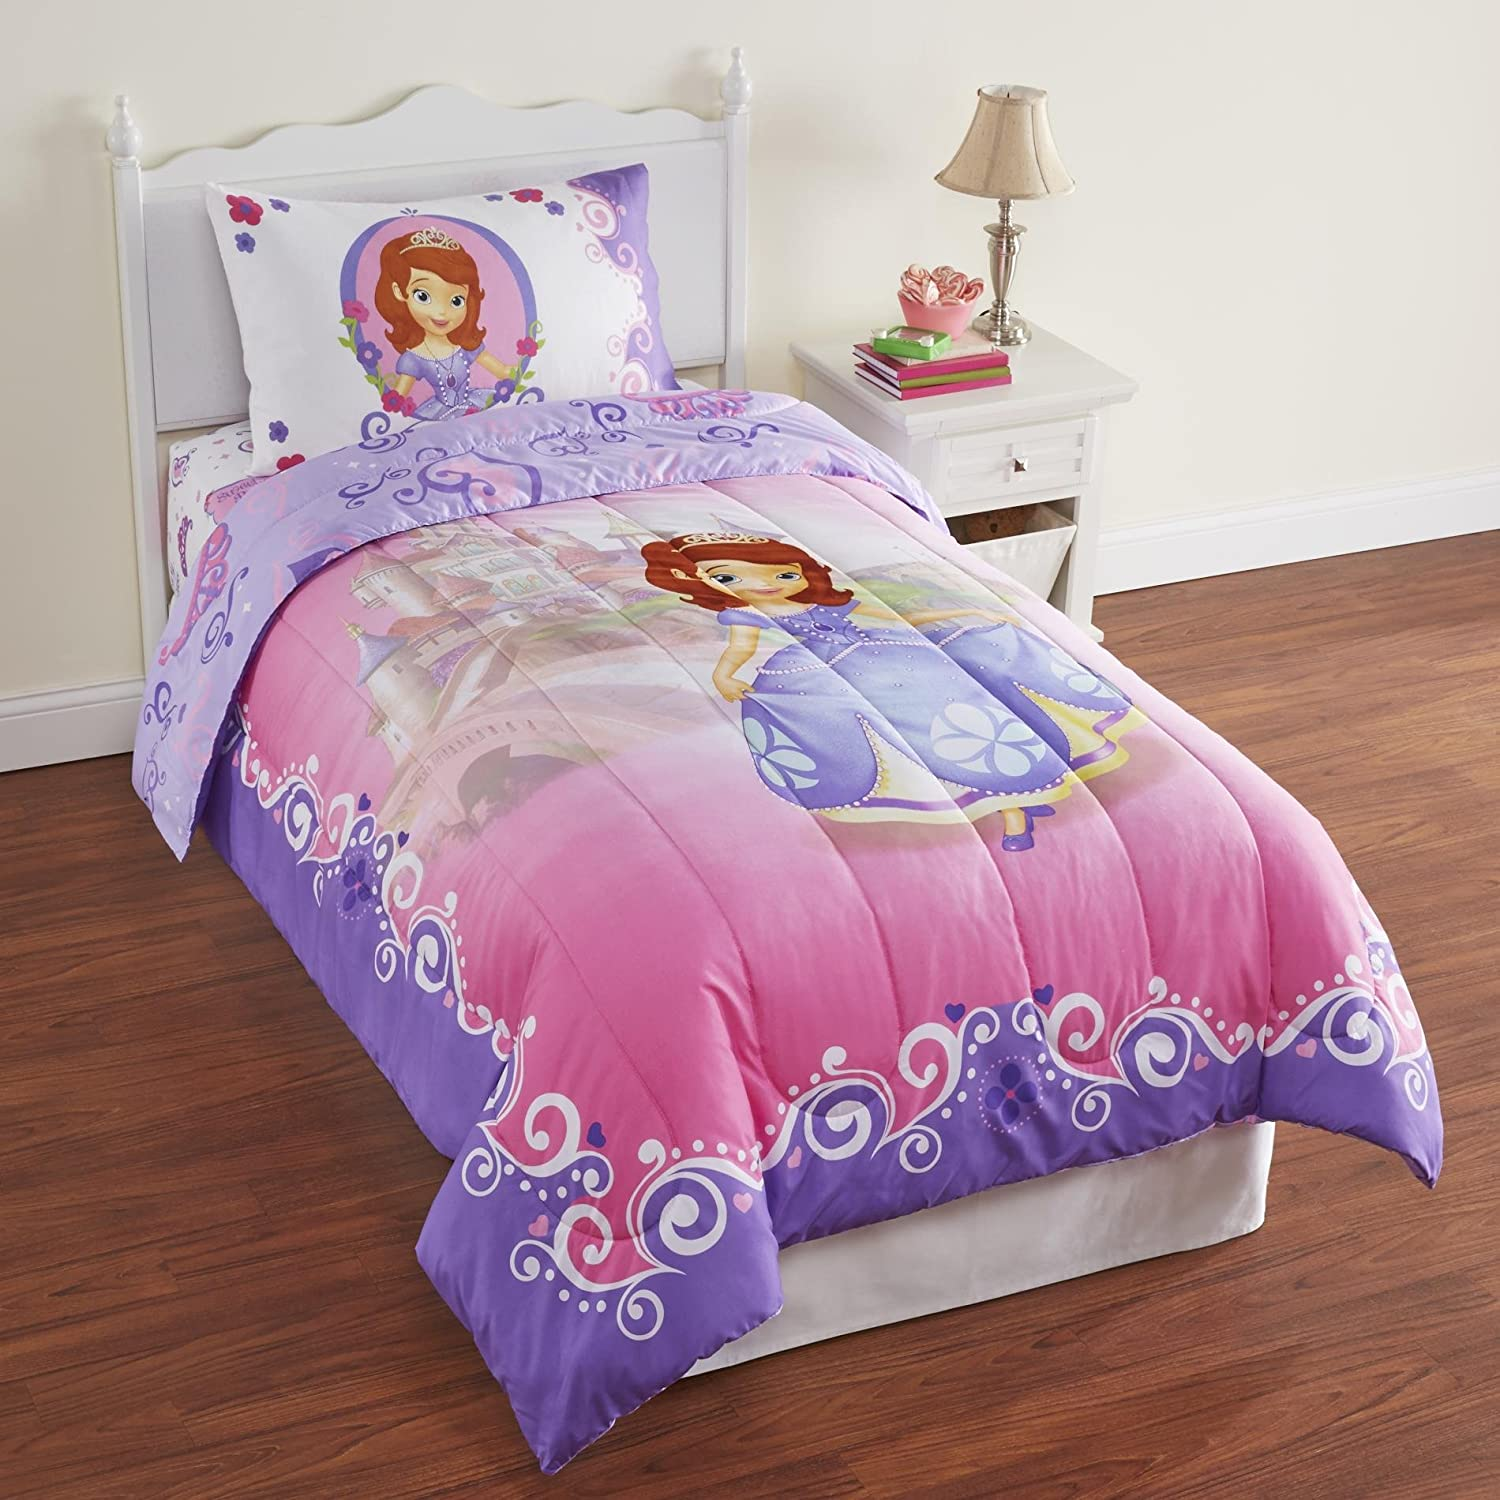 Sofia the First Twin Comforter and Sheet Set